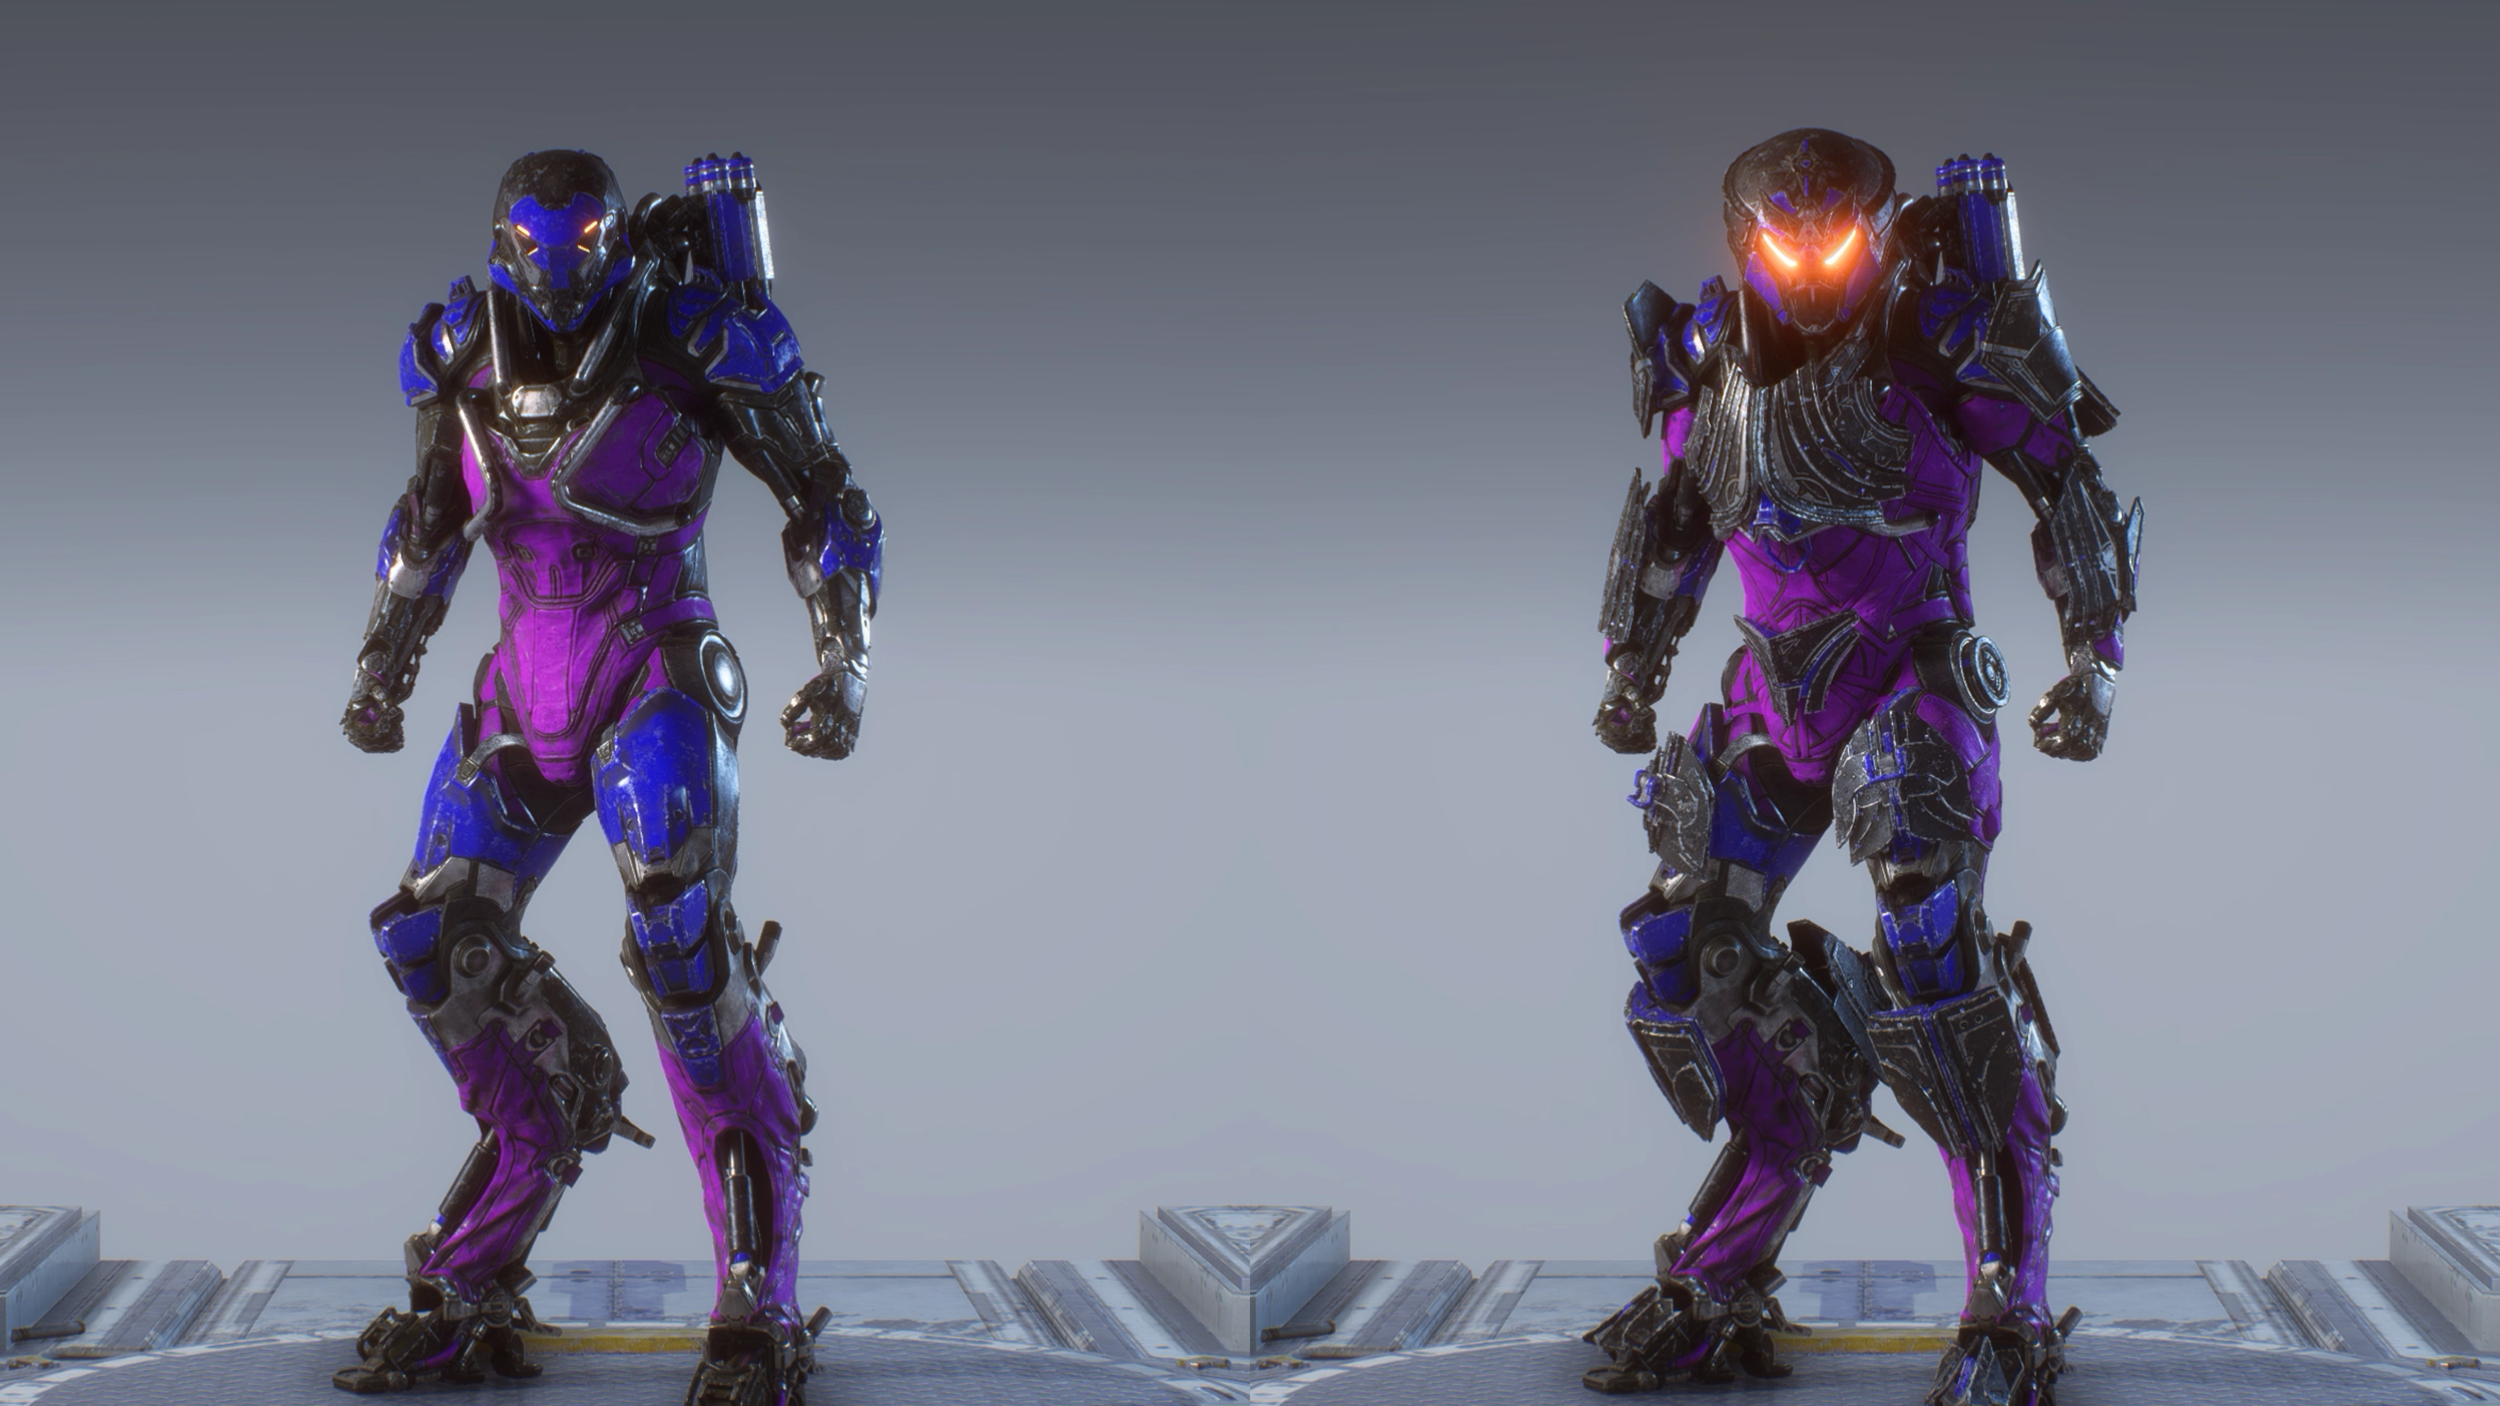 On the left is the default Armour Set, bare in mind that for all of these builds shown, I have used my own custom Paint job.  The Default is nice but very standard, the Legion of Dawn armour set on the right is, as expected, far superior in detail and general look.